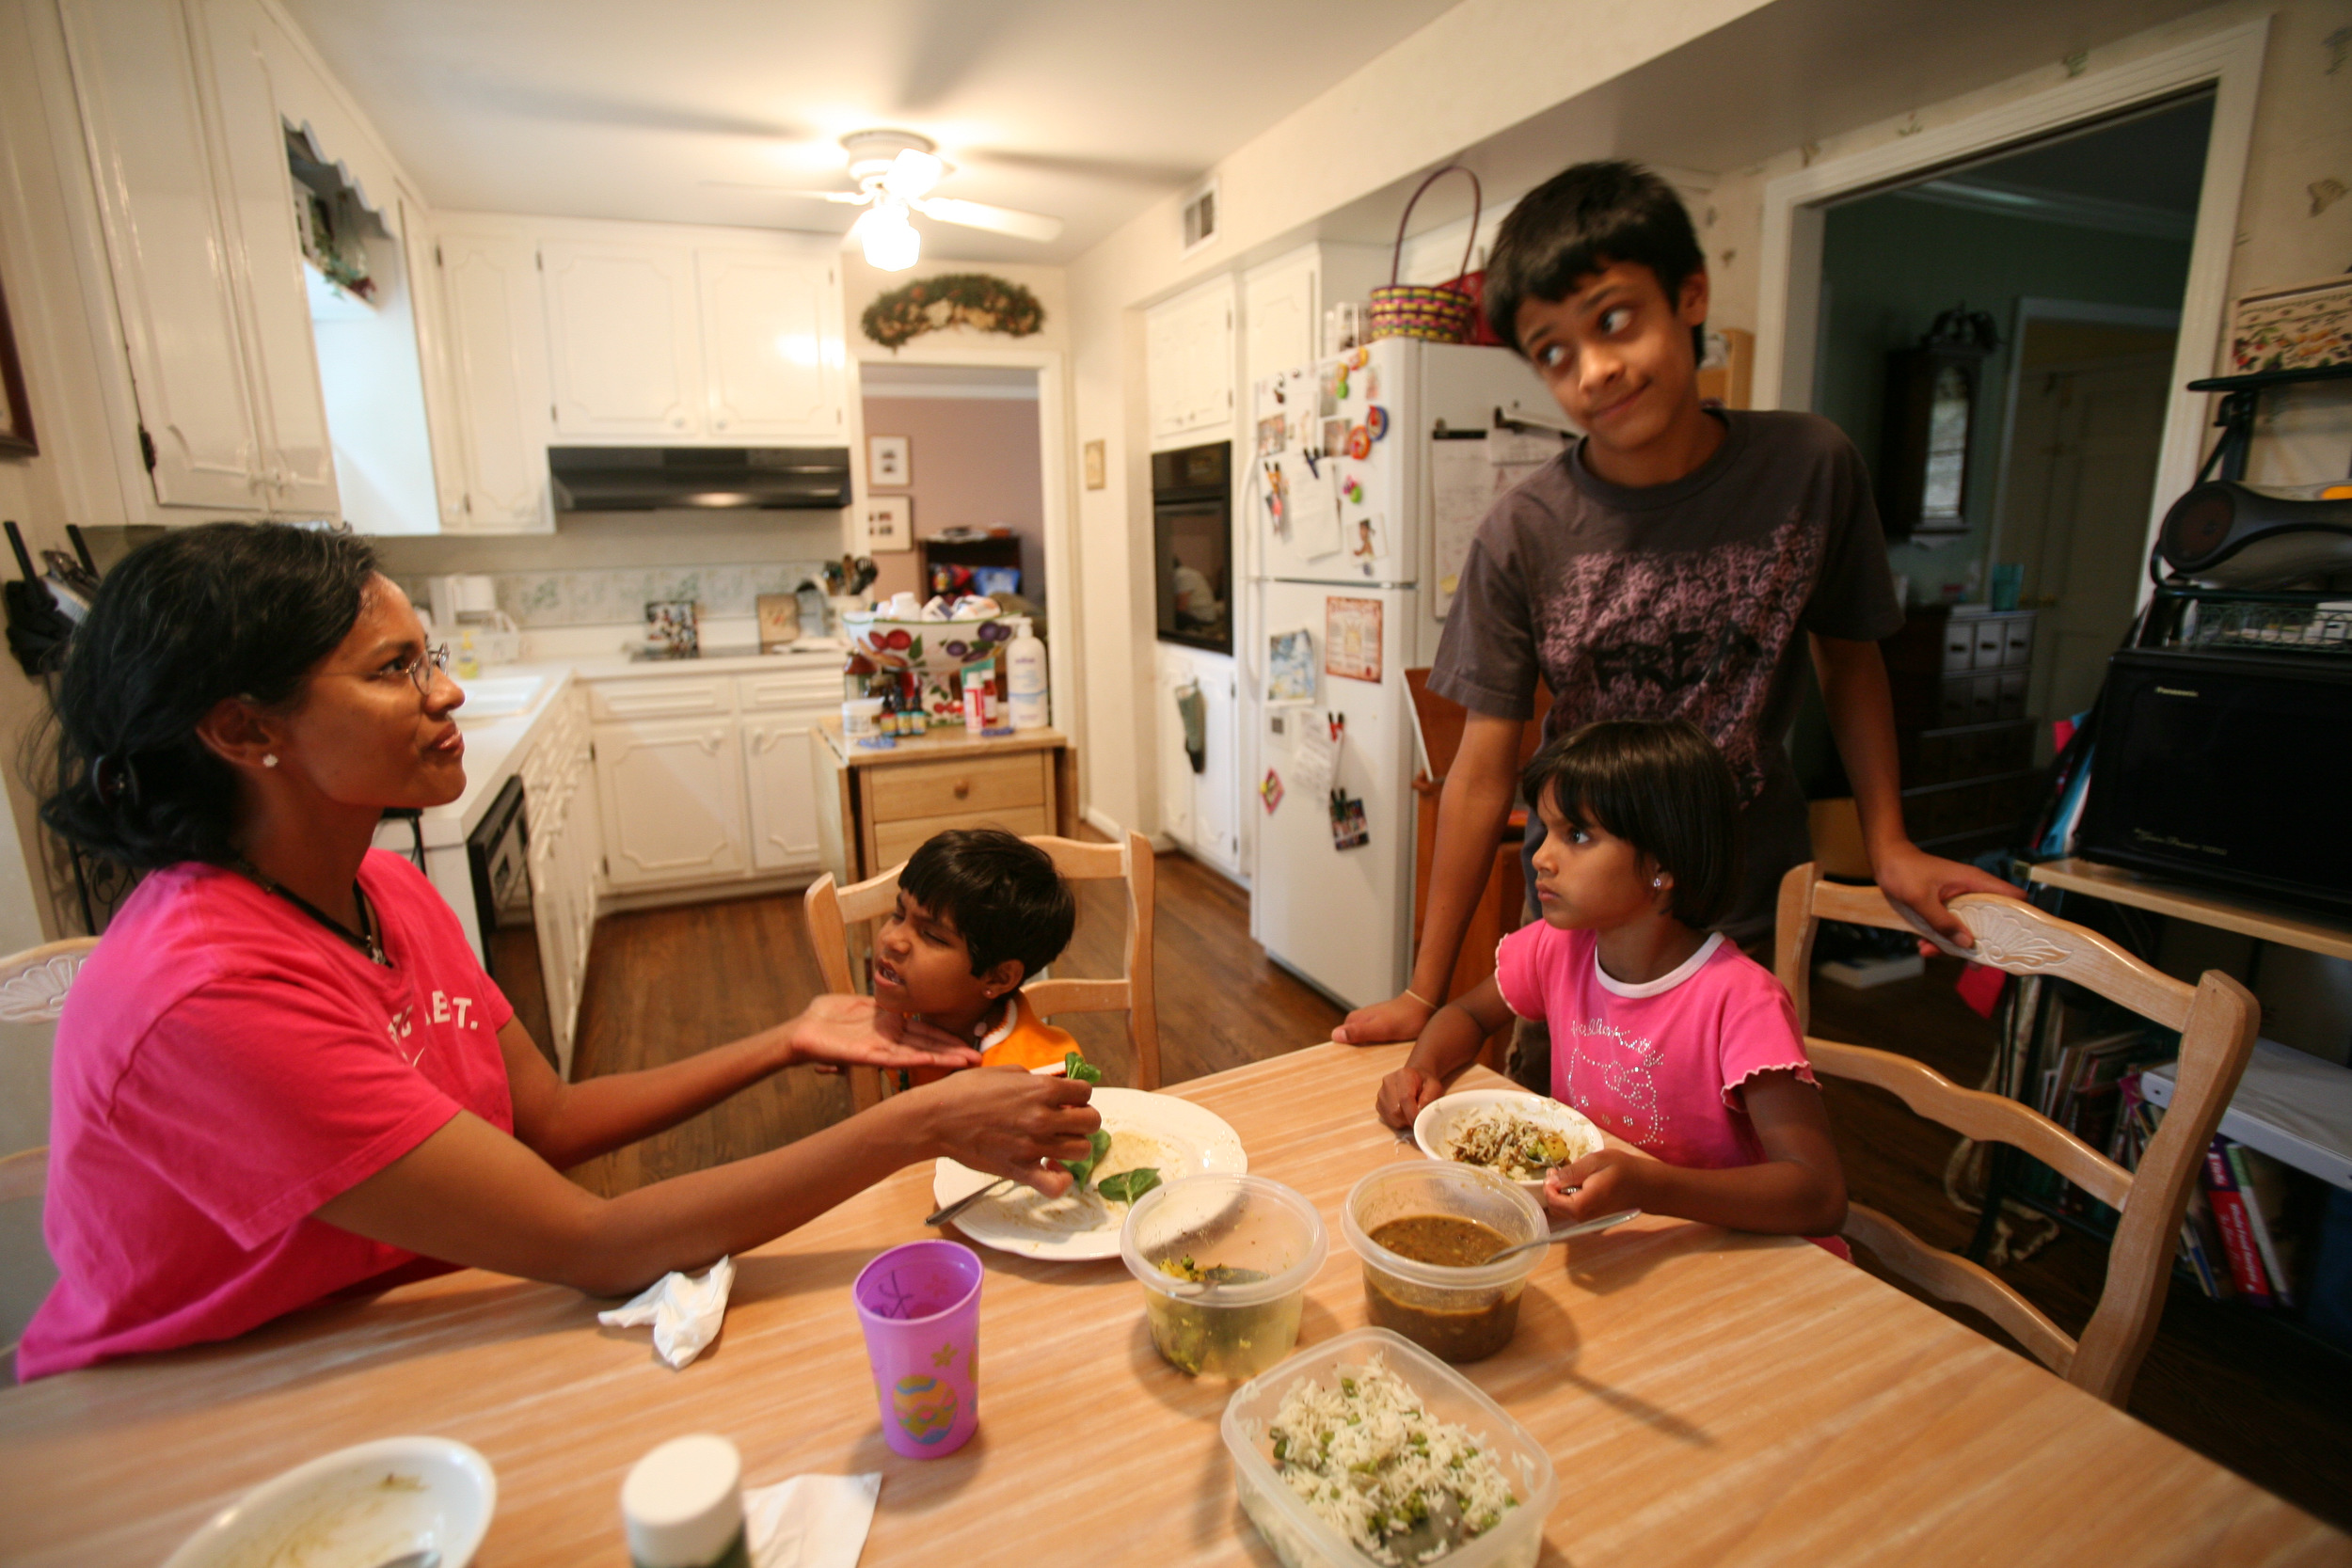 Karthi Masters, left, feeds Kajal at the dinner table with her children Davey, and Elijah in Franklin, Tenn., Wednesday, May 30, 2007. The Masters, who want to adopt Kajal, have already adopted Davey from India several years ago.